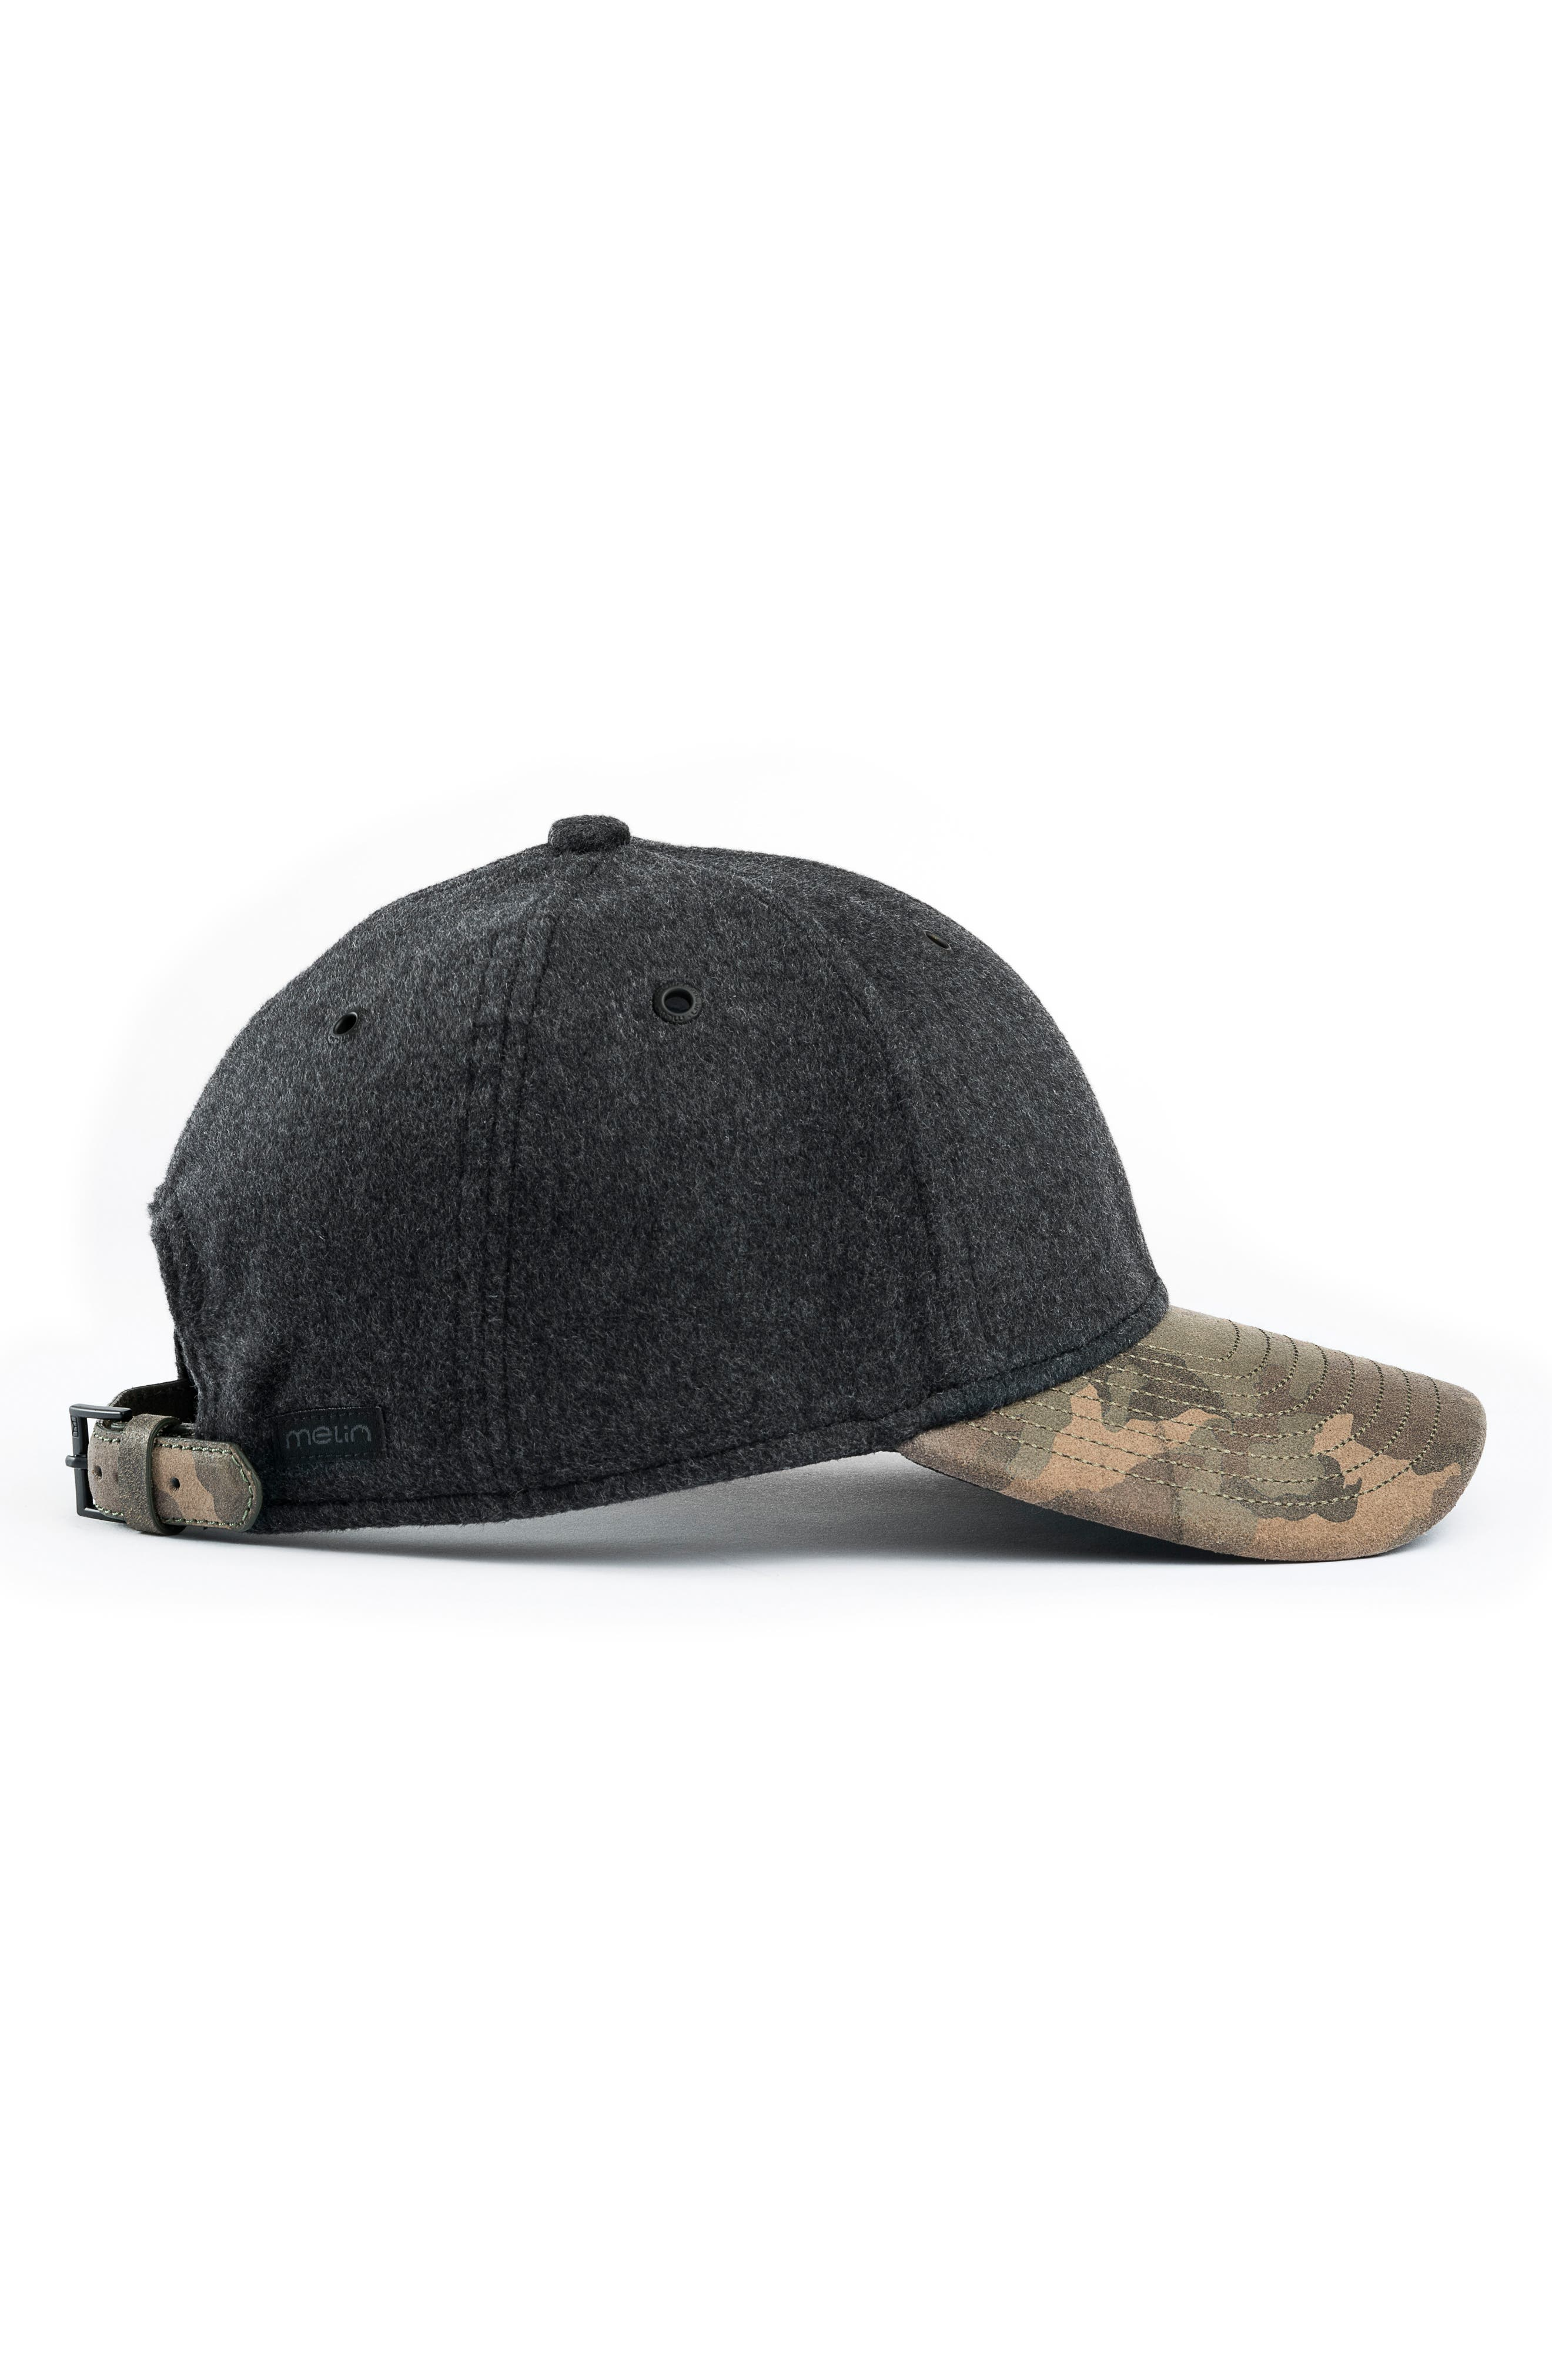 Maverick Ball Cap,                             Alternate thumbnail 5, color,                             Dark Charcoal